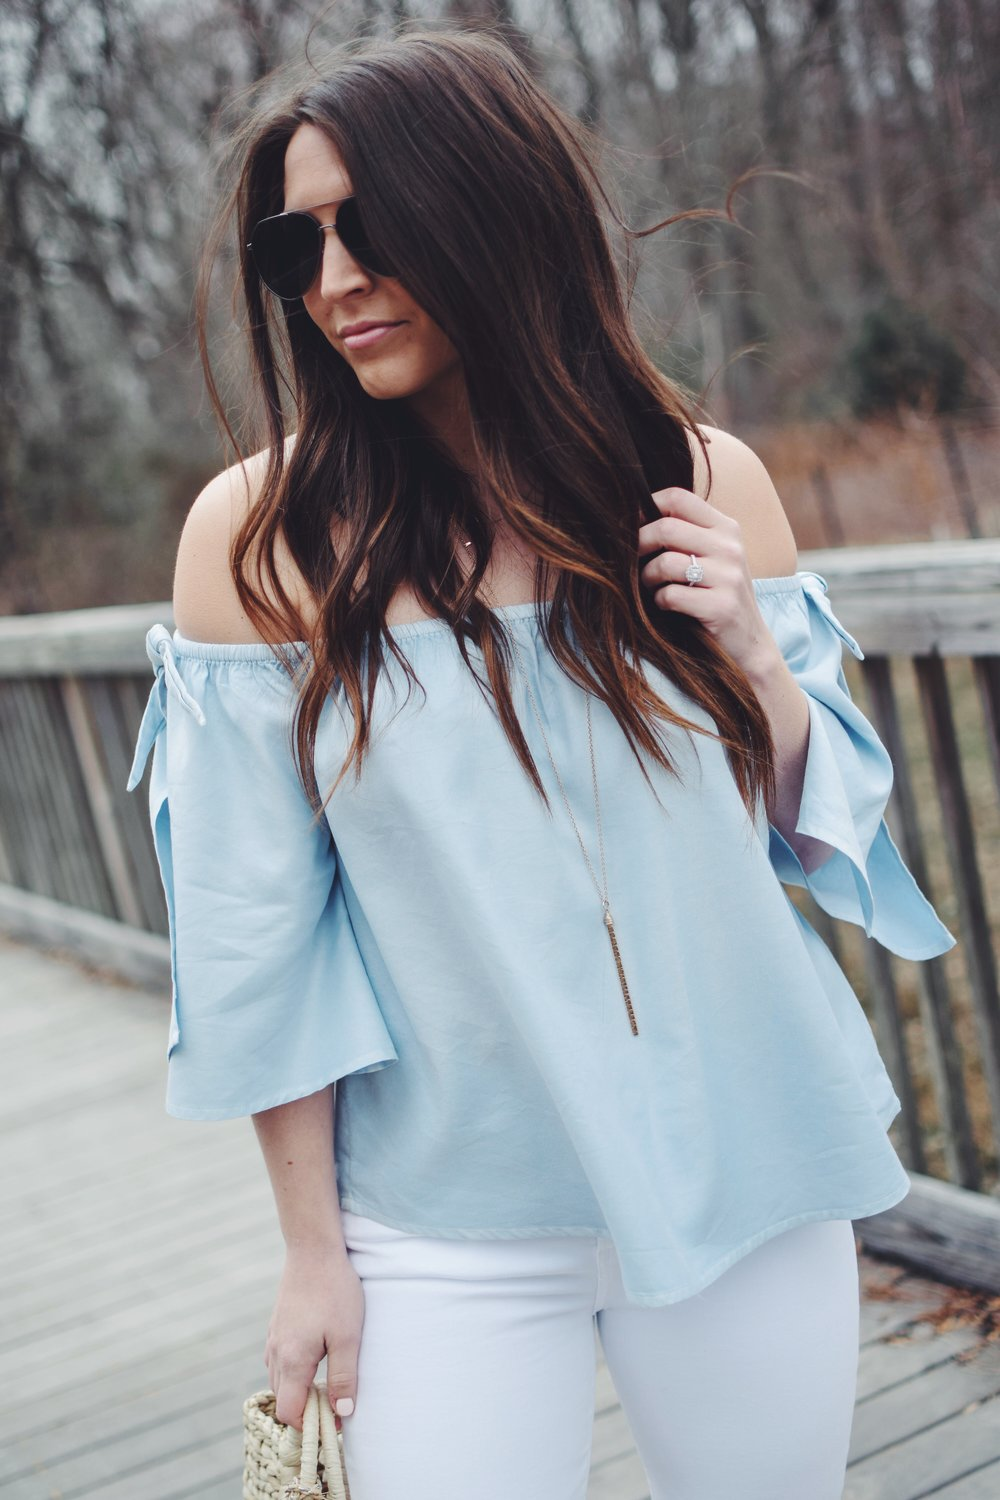 How to Style White Denim for Easter | Pine Barren Beauty | citizen's of humanity white denim, billabong off the shoulder chambray top, Marc fisher wedges, spring outfit idea, spring outfit inspiration, easter outfit idea, what to wear for easter, how to style a straw bag